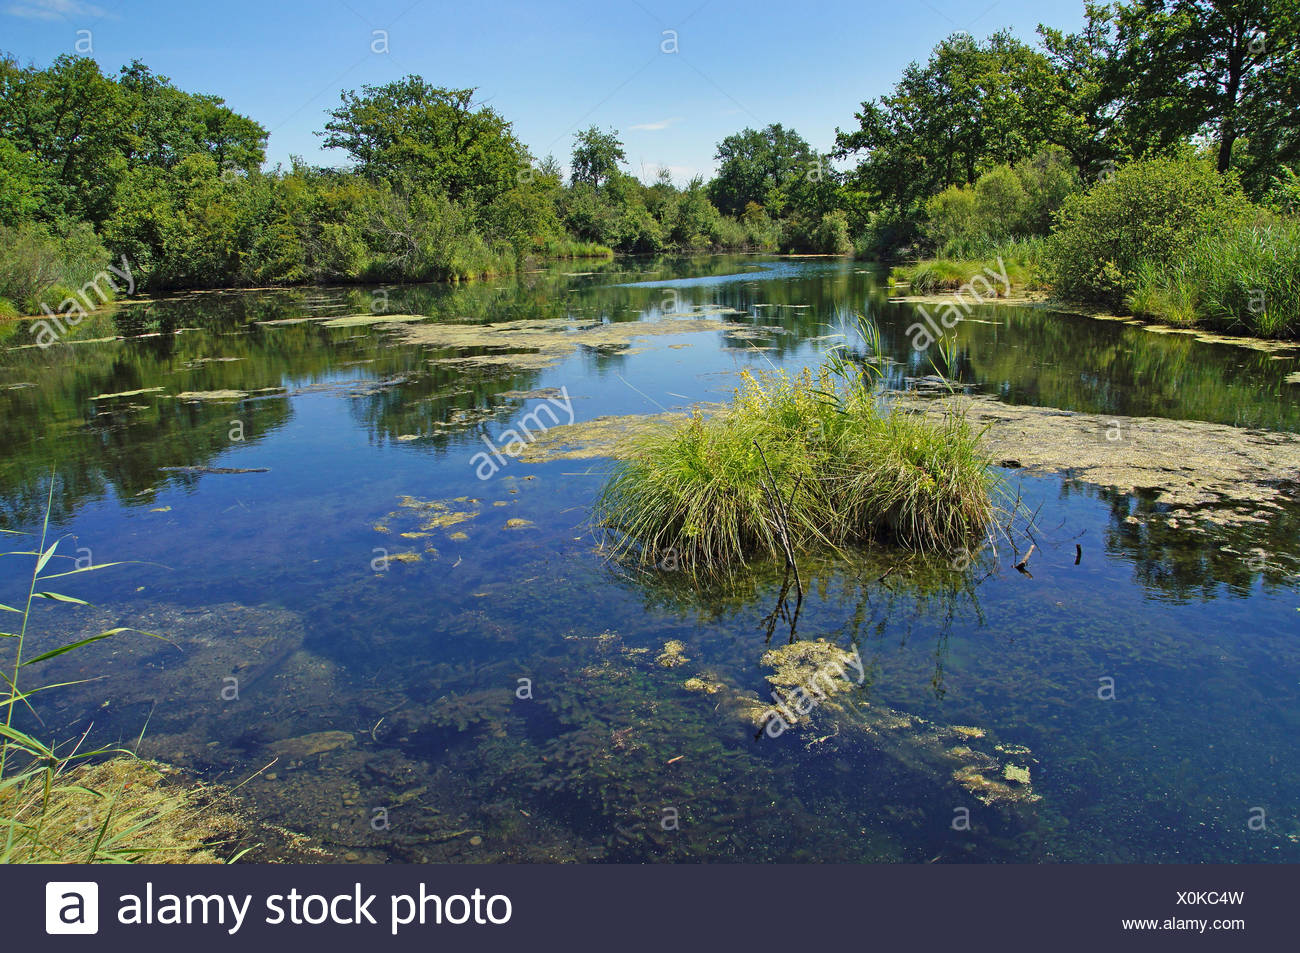 Blaues Loch (Blue Hole), river head at the Rhine, Germany, Baden-Wuerttemberg, Taubergiessen - Stock Image